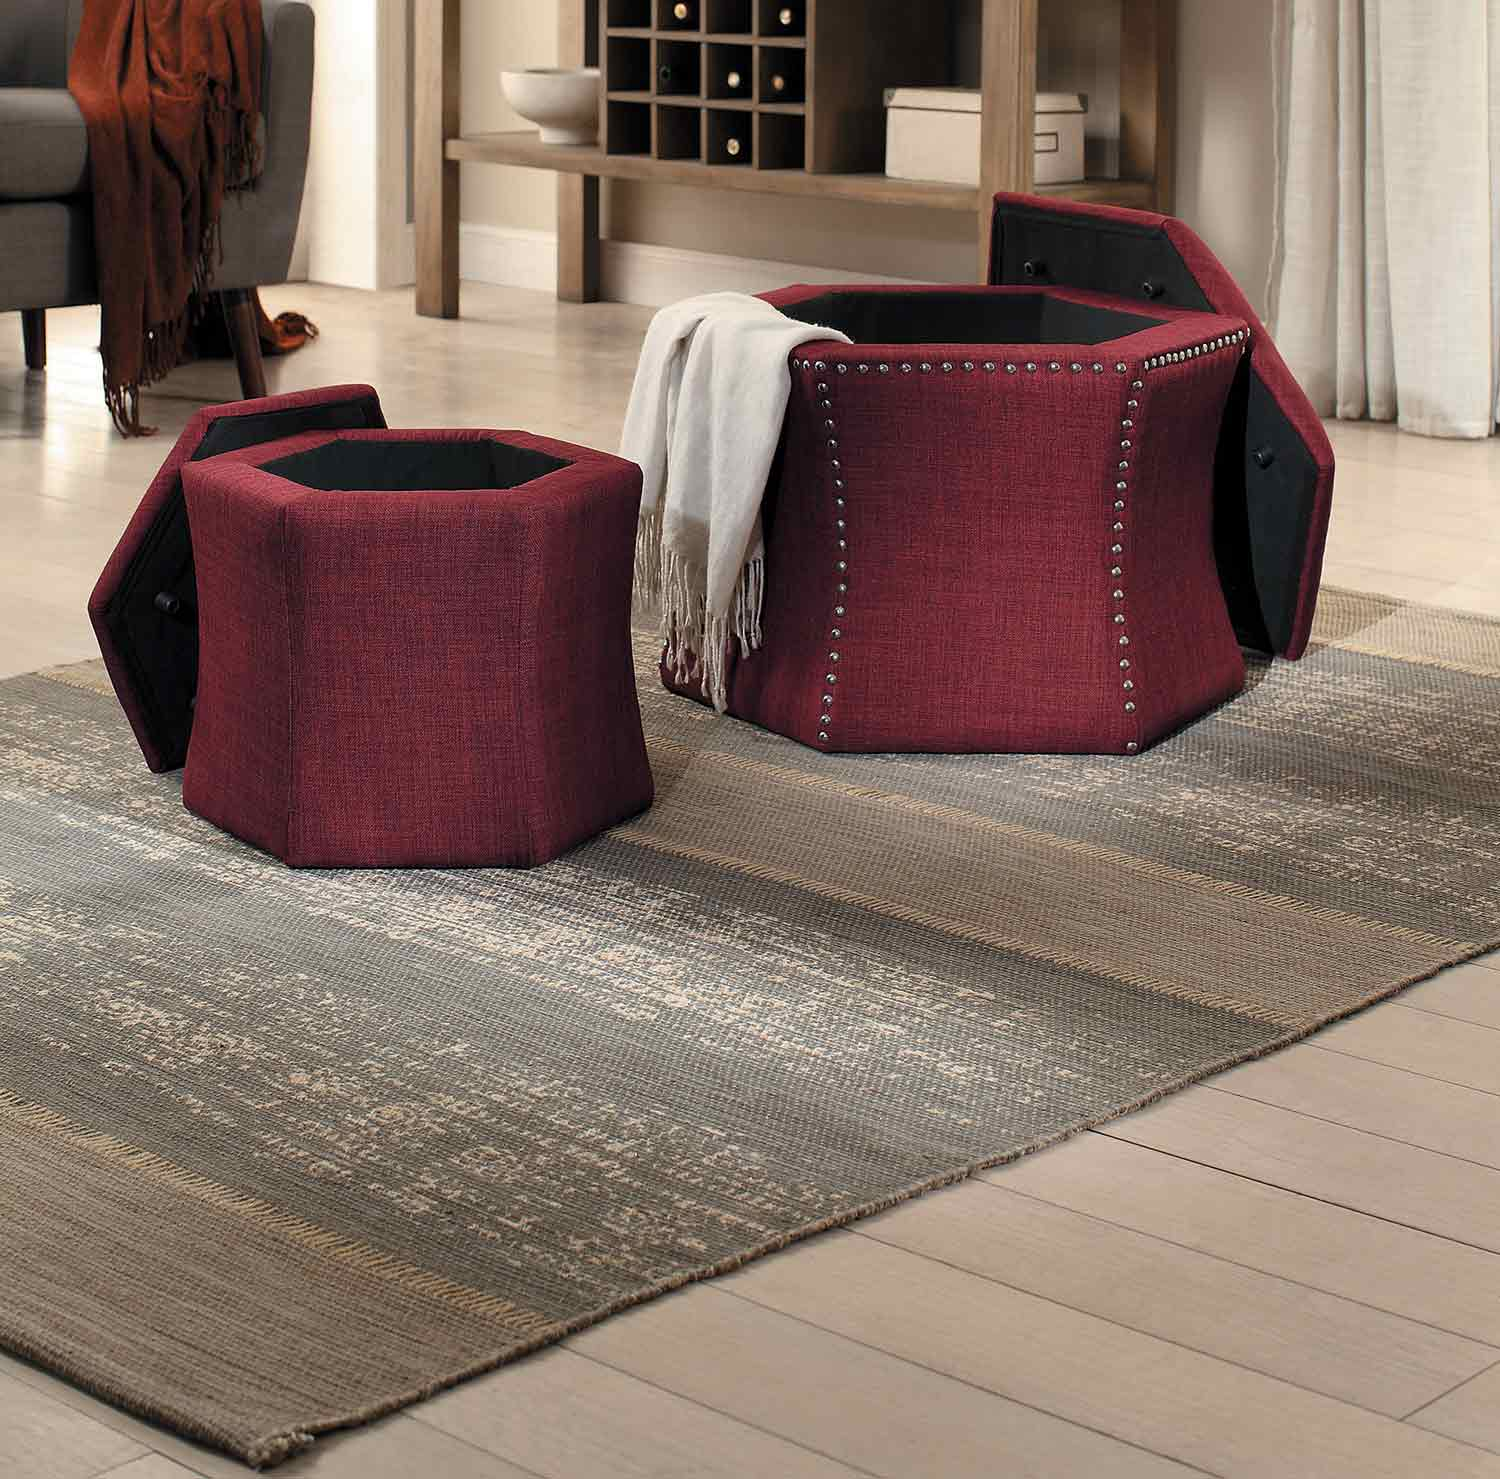 Homelegance Kennelly 2 Piece Storage Ottoman Set   Red